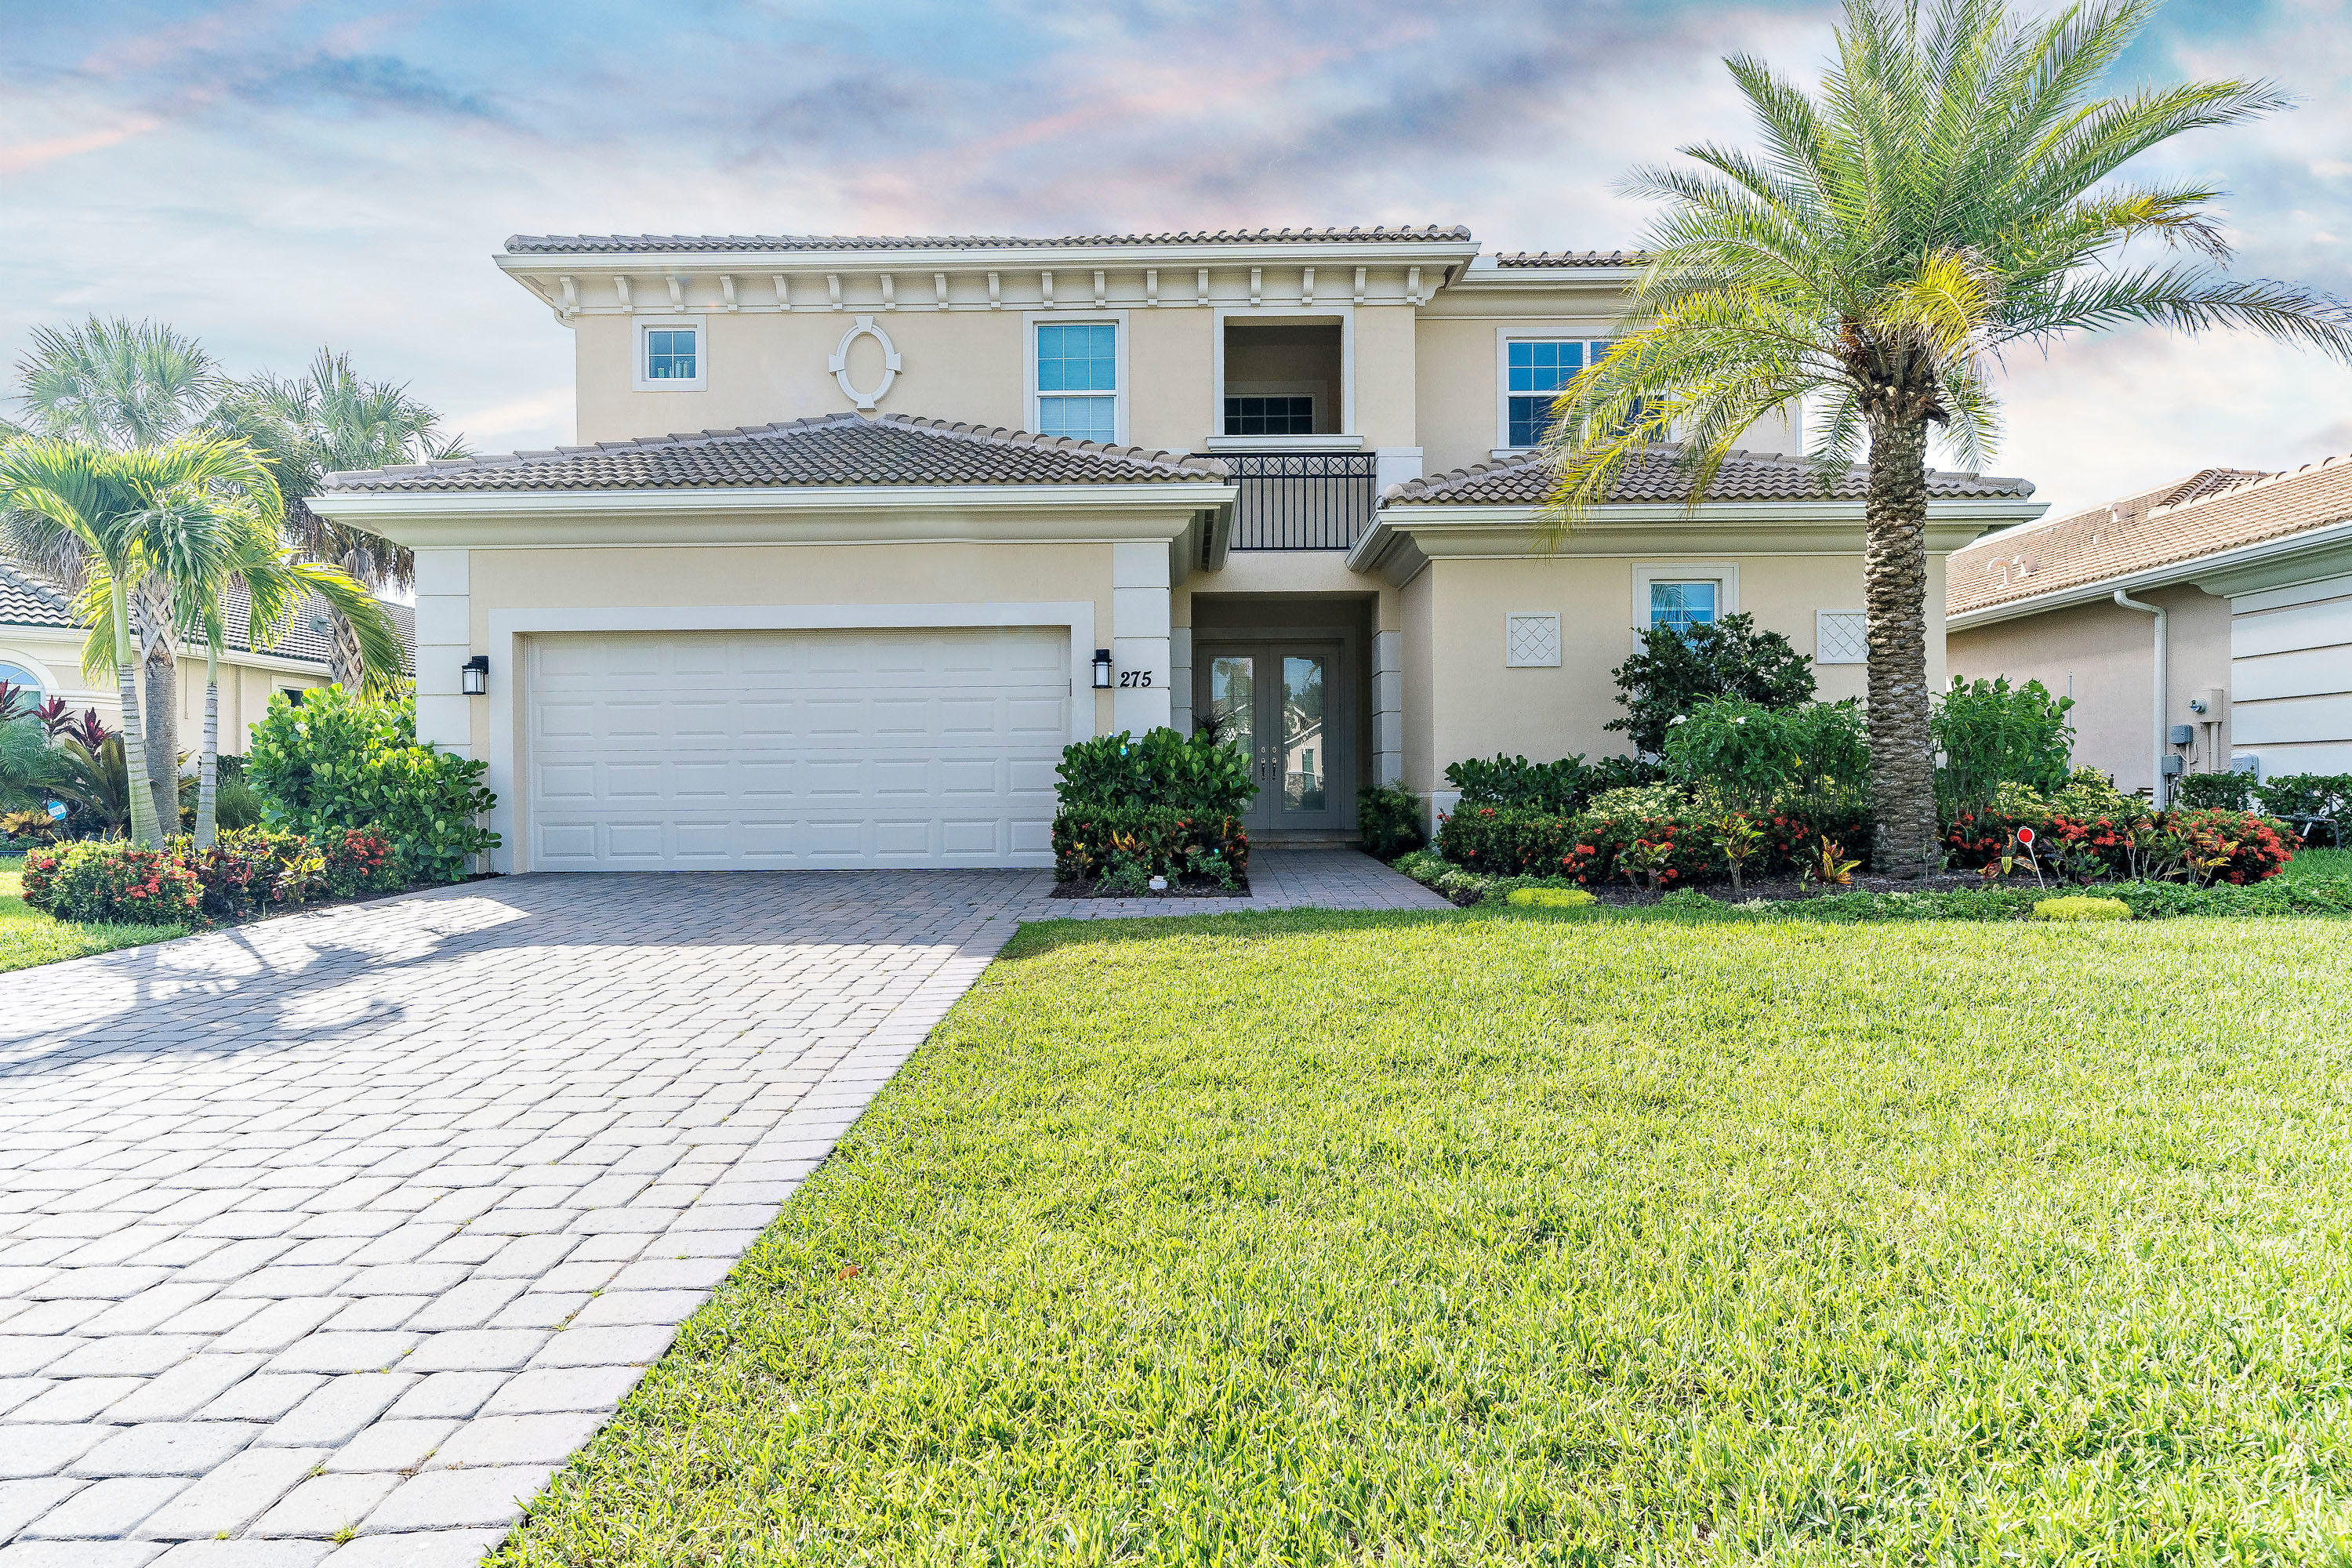 New Home for sale at 275 Carina Drive in Jupiter